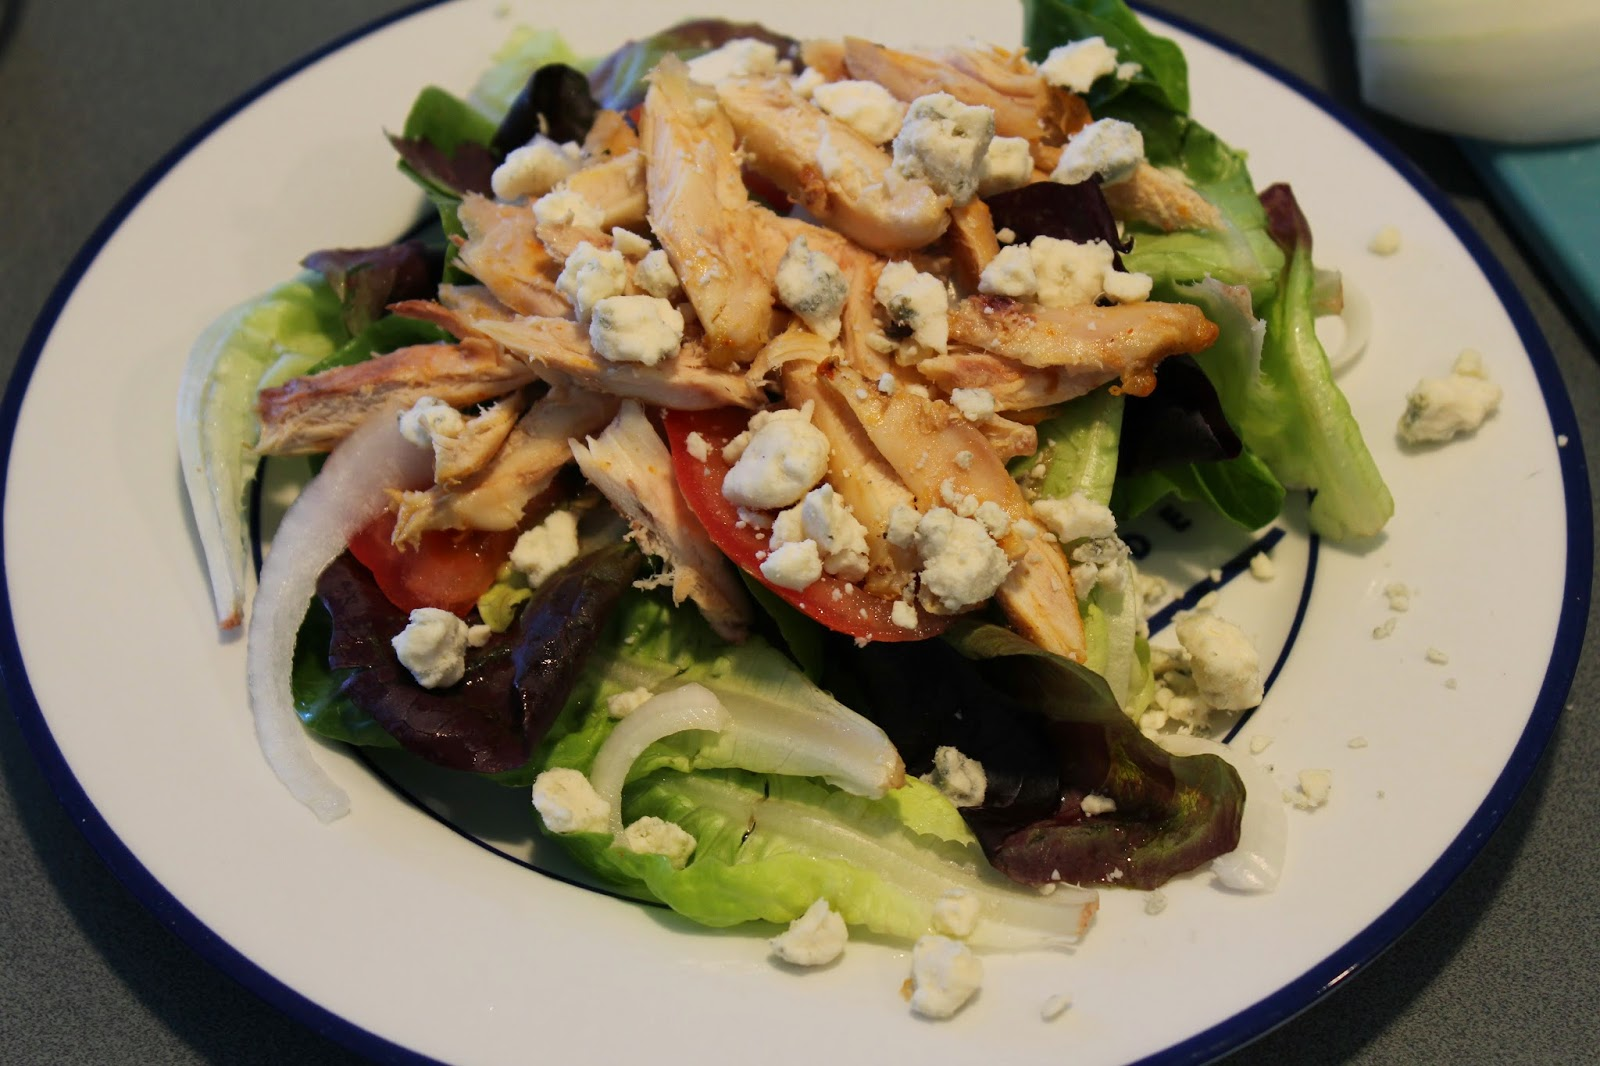 buffalo wing salad, blue cheese, onions, tomatoes, salad greens mix